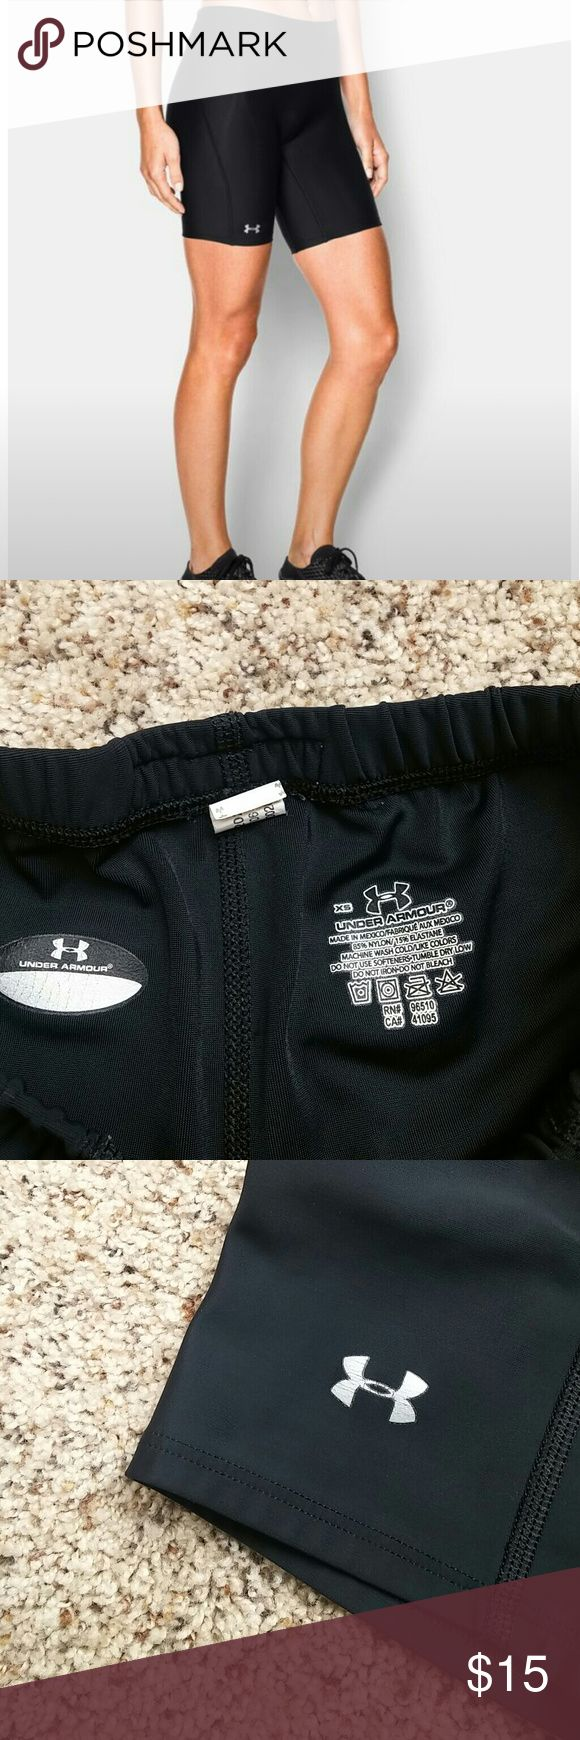 Under Armer Compression Shorts Pre owned in good condition logo has some cracking Under Armour Shorts